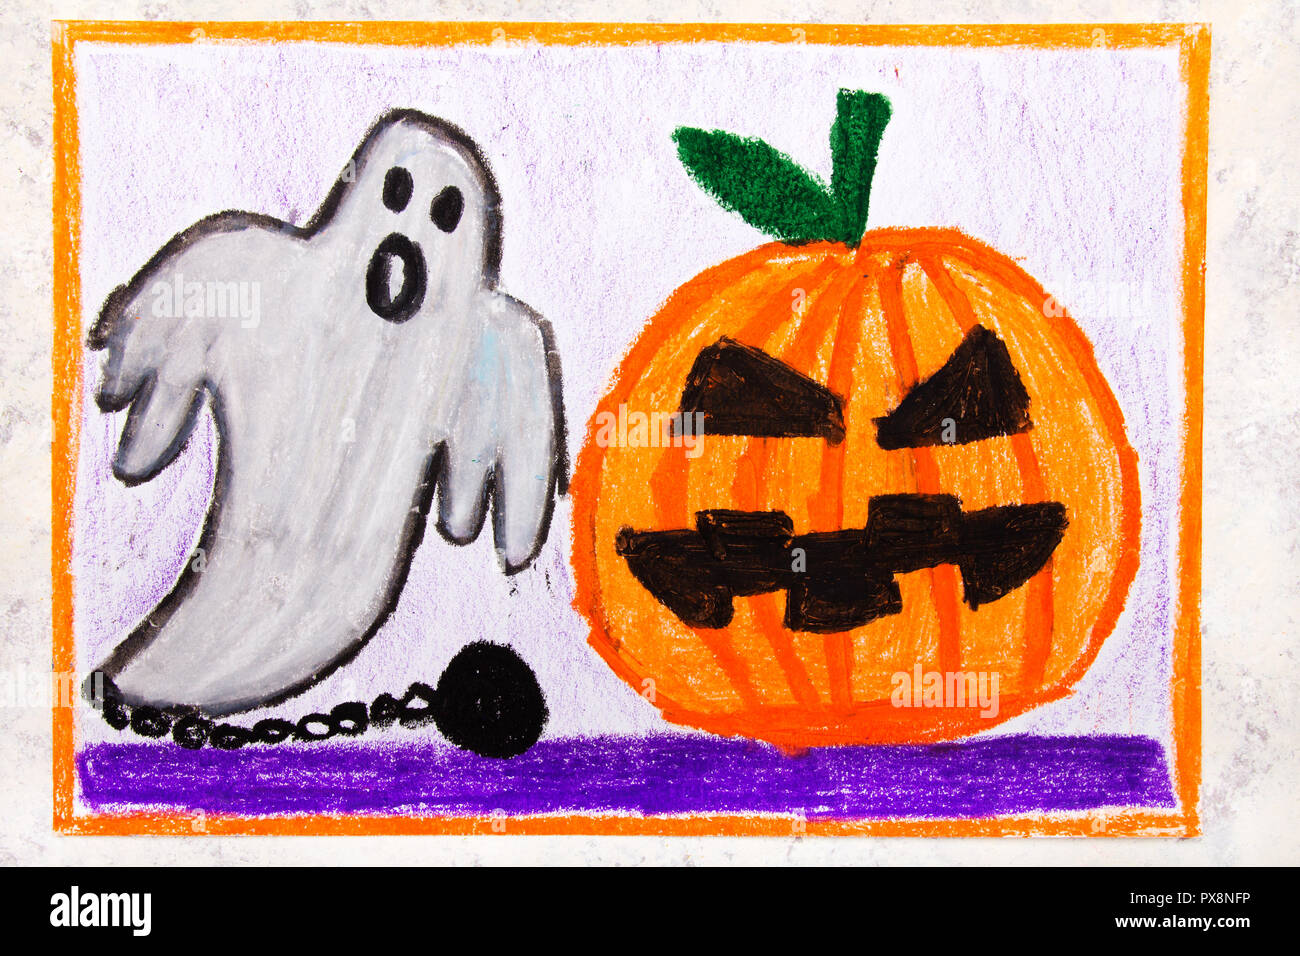 Colorful Hand Drawing Cute Hallowen Pumpkin And Scary Ghost Halloween Drawing On White Background Stock Photo Alamy